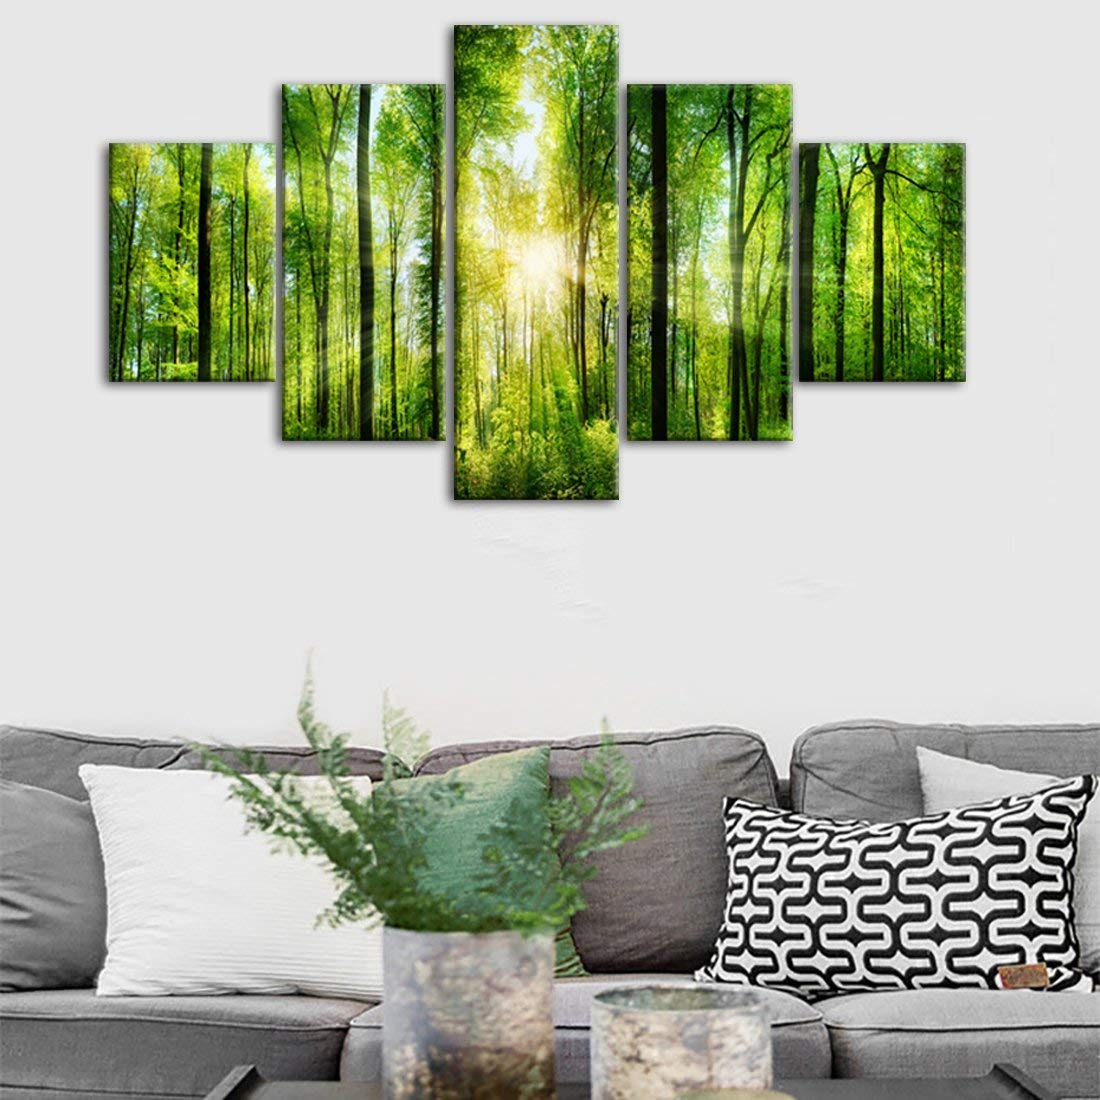 5 Panels Morning Sunrise Green Trees Landscape Wall Decor Sunshine Over Forest Photograph Printed on Canvas for Home Wall Decoration(60''W x 32''H)